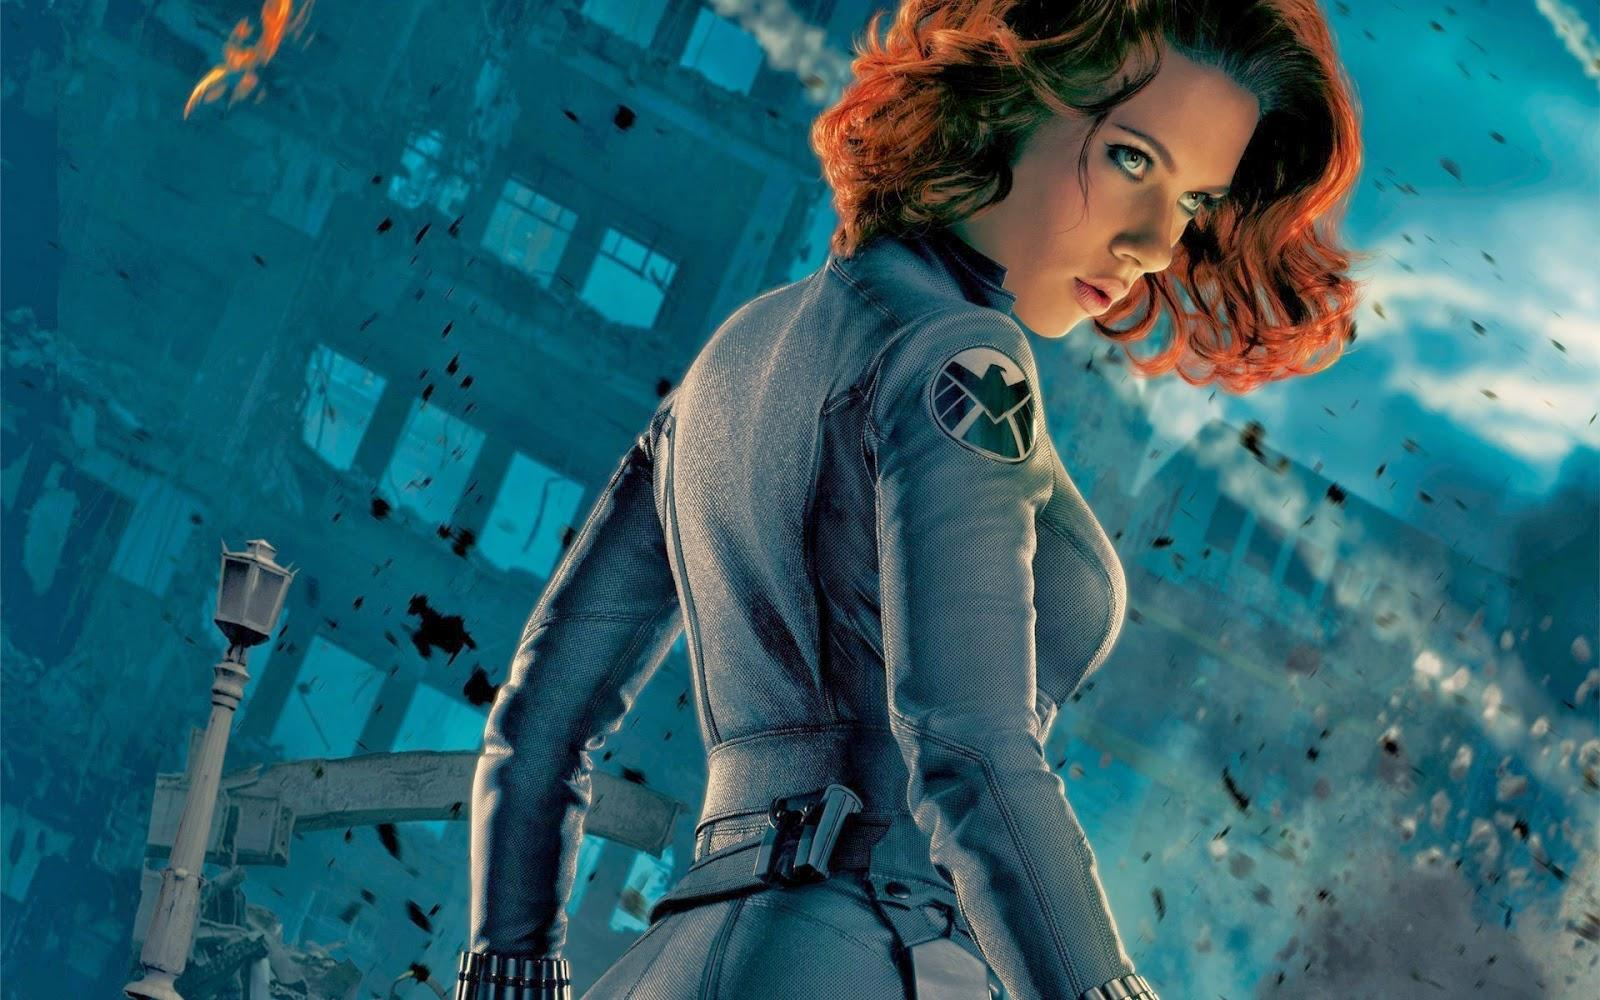 Black Widow Movie Poster Wallpapers Wallpaper Cave